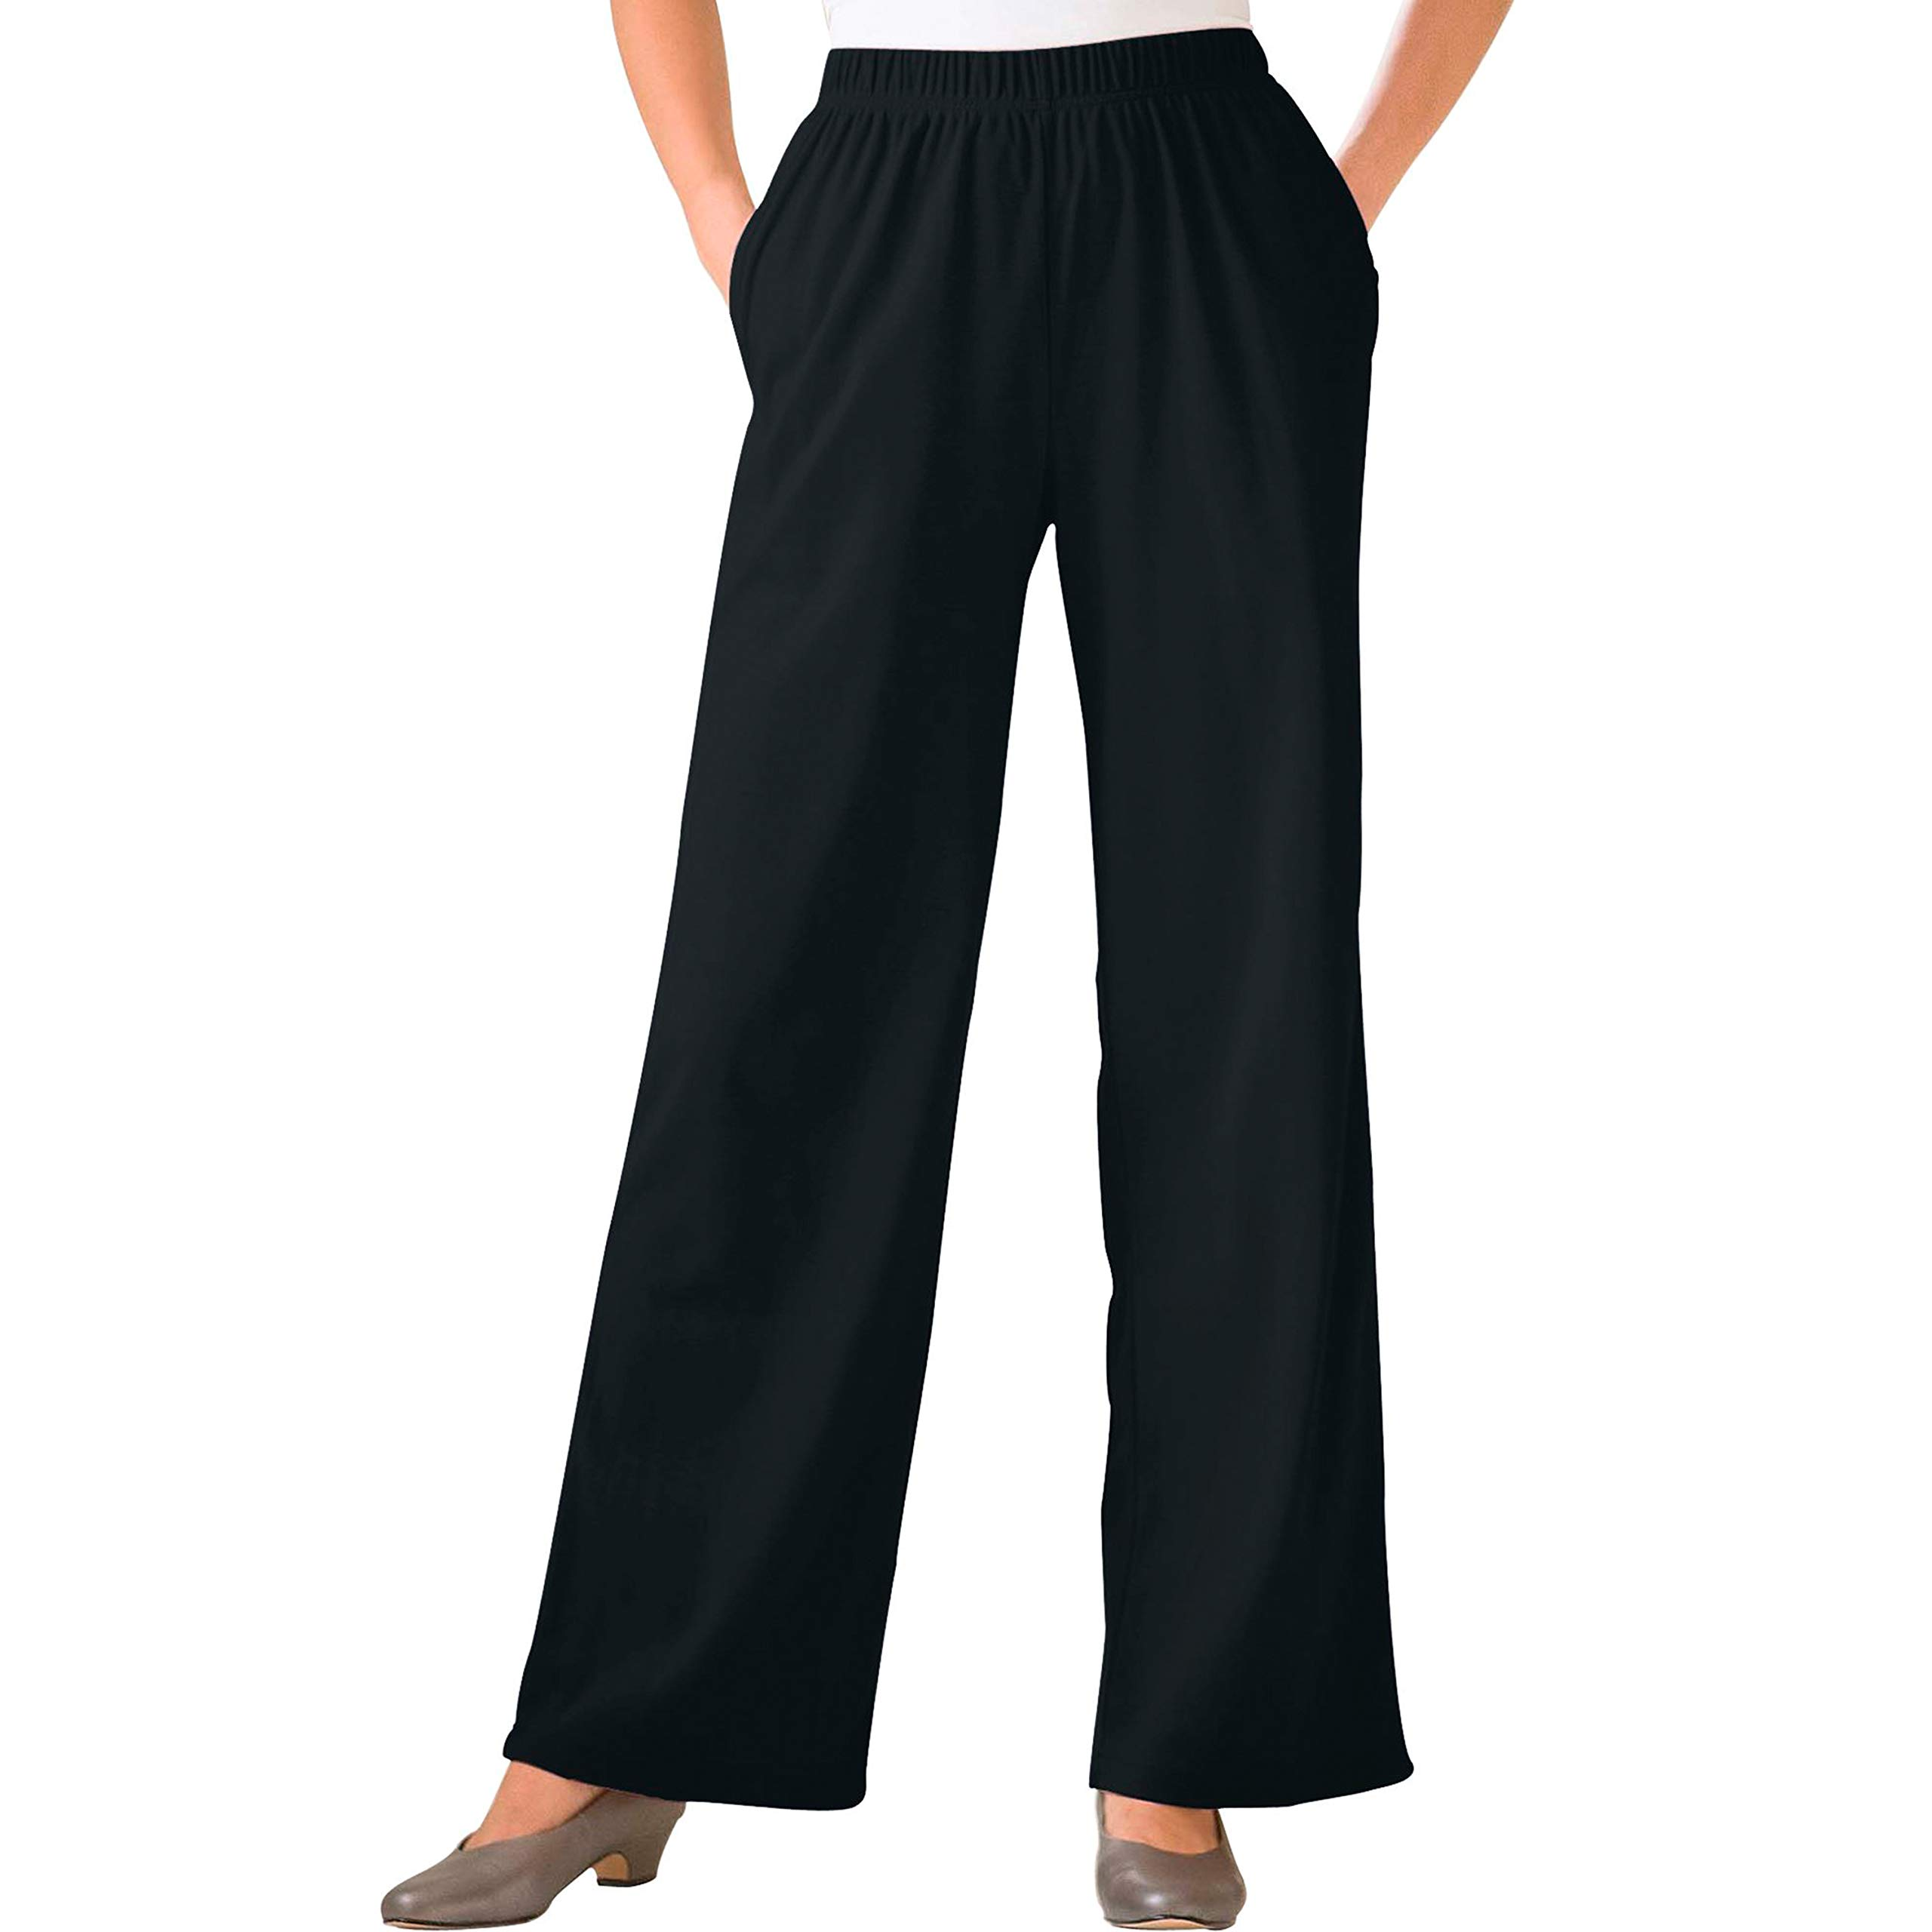 Woman Within Women's Plus Size 7-Day Knit Wide Leg Pant - Black, 1X by Woman Within